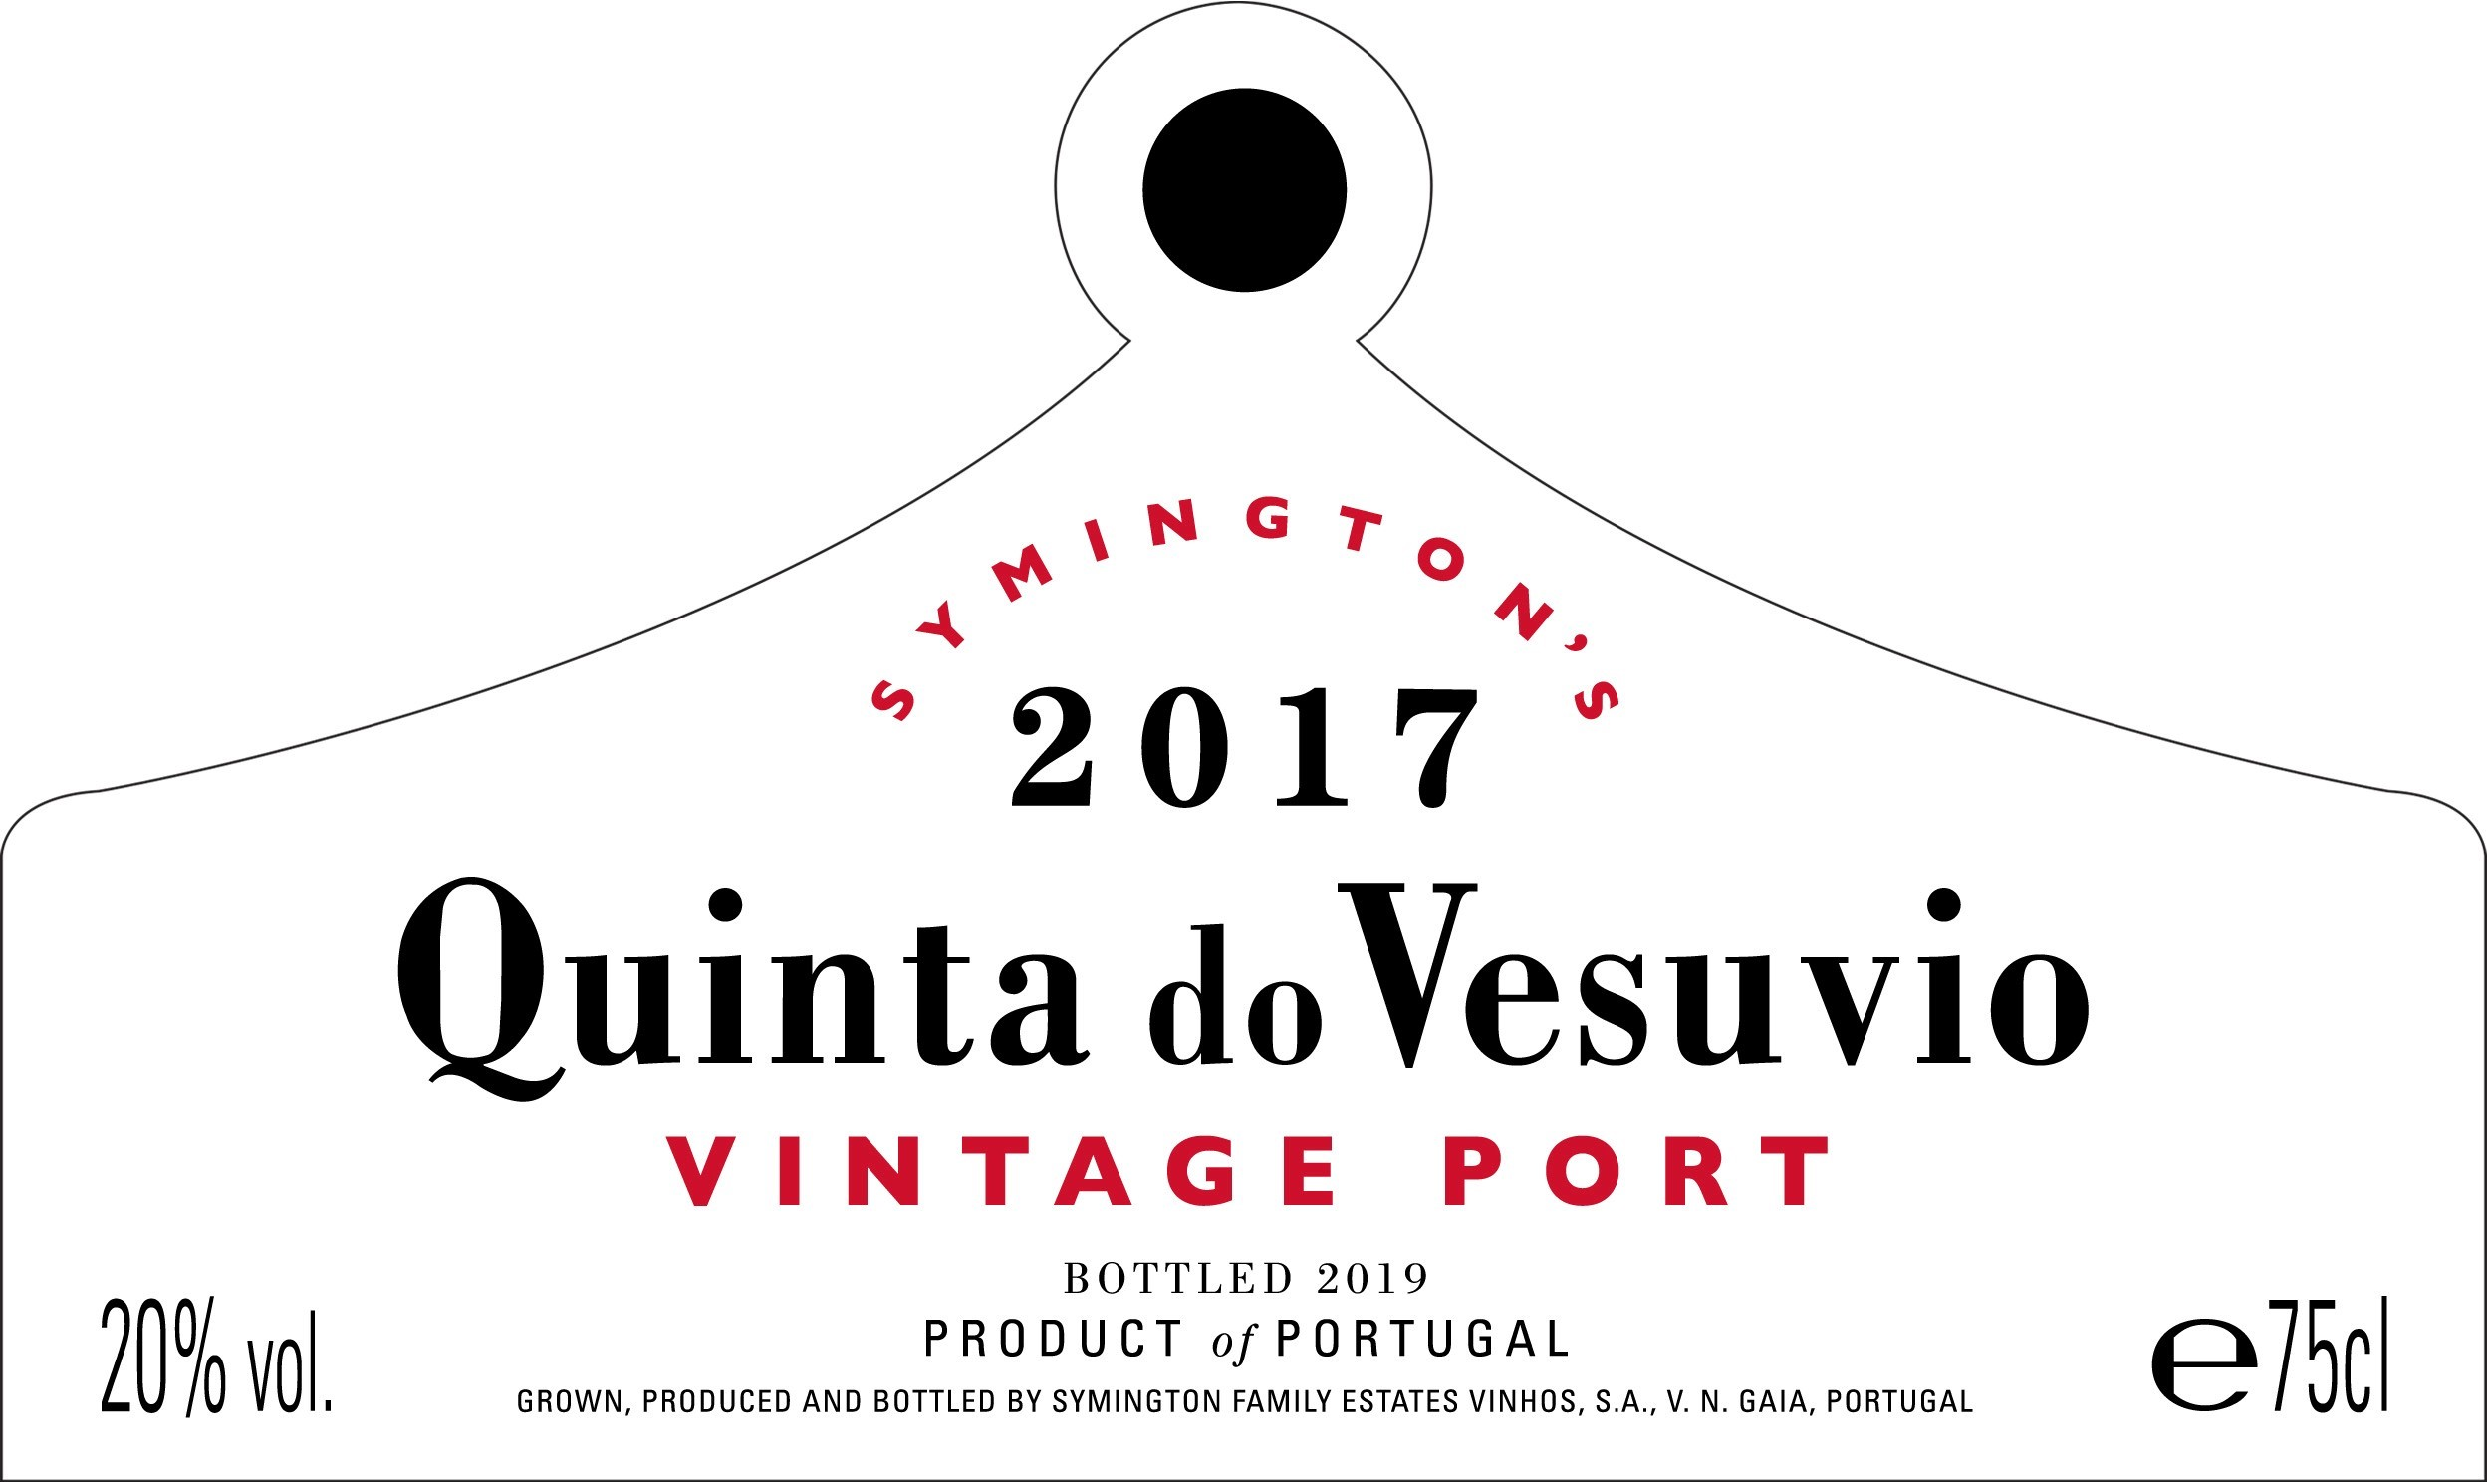 Quinta do Vesuvio label